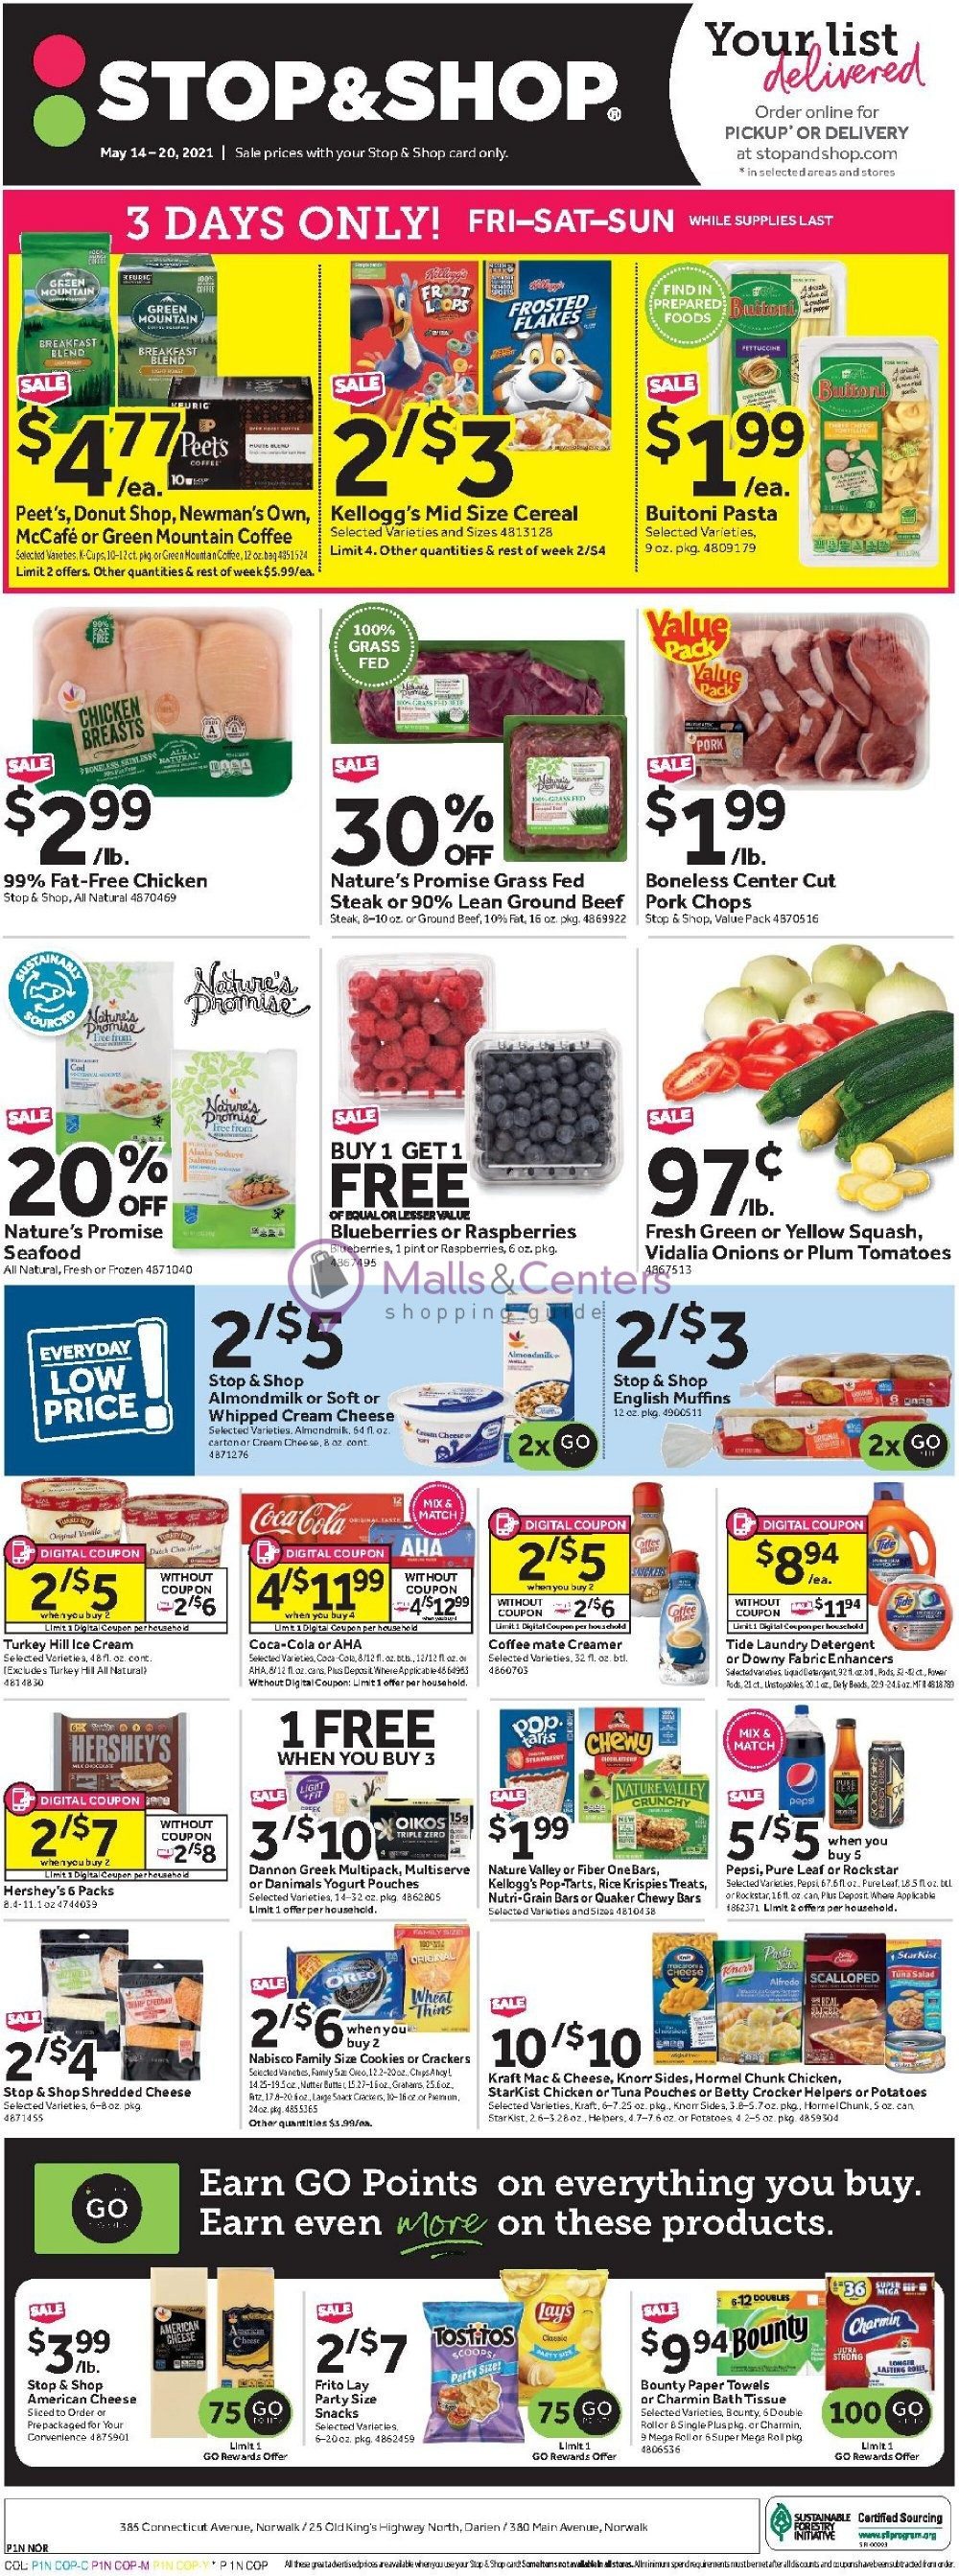 weekly ads Stop & Shop - page 1 - mallscenters.com